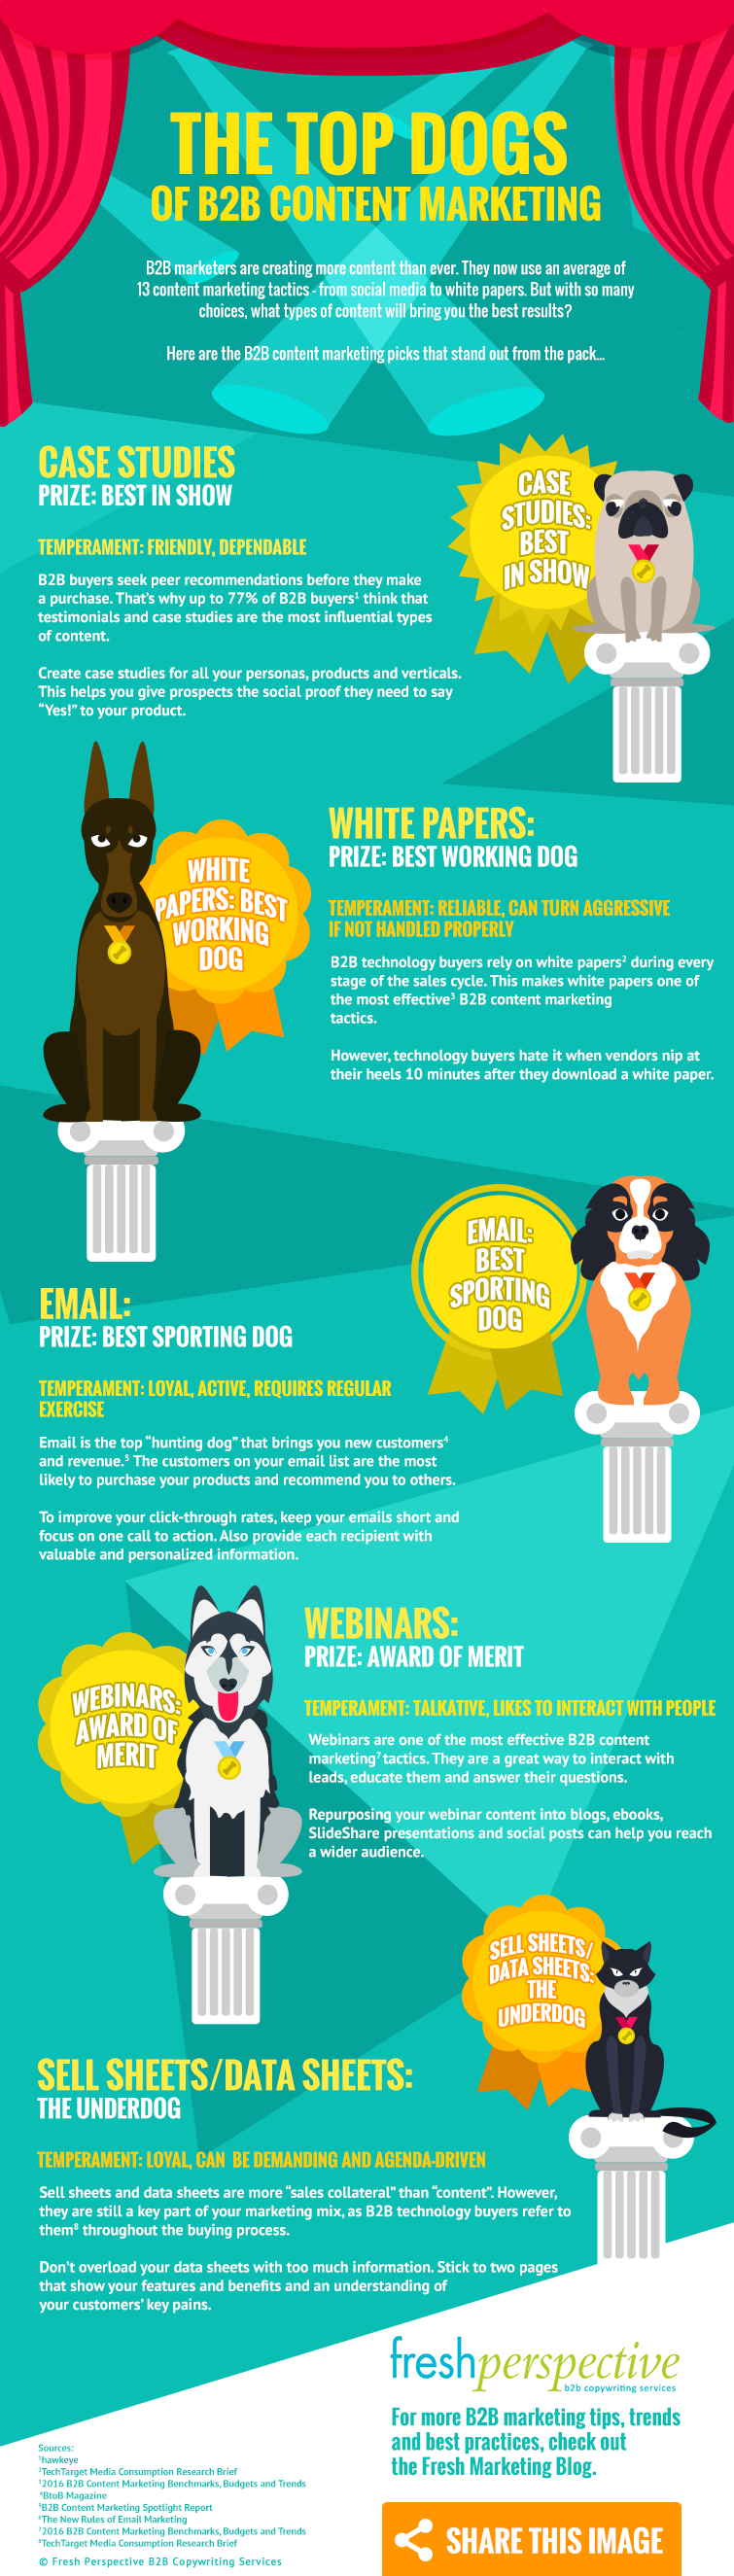 The Top Dogs of B2B Content Marketing Infographic